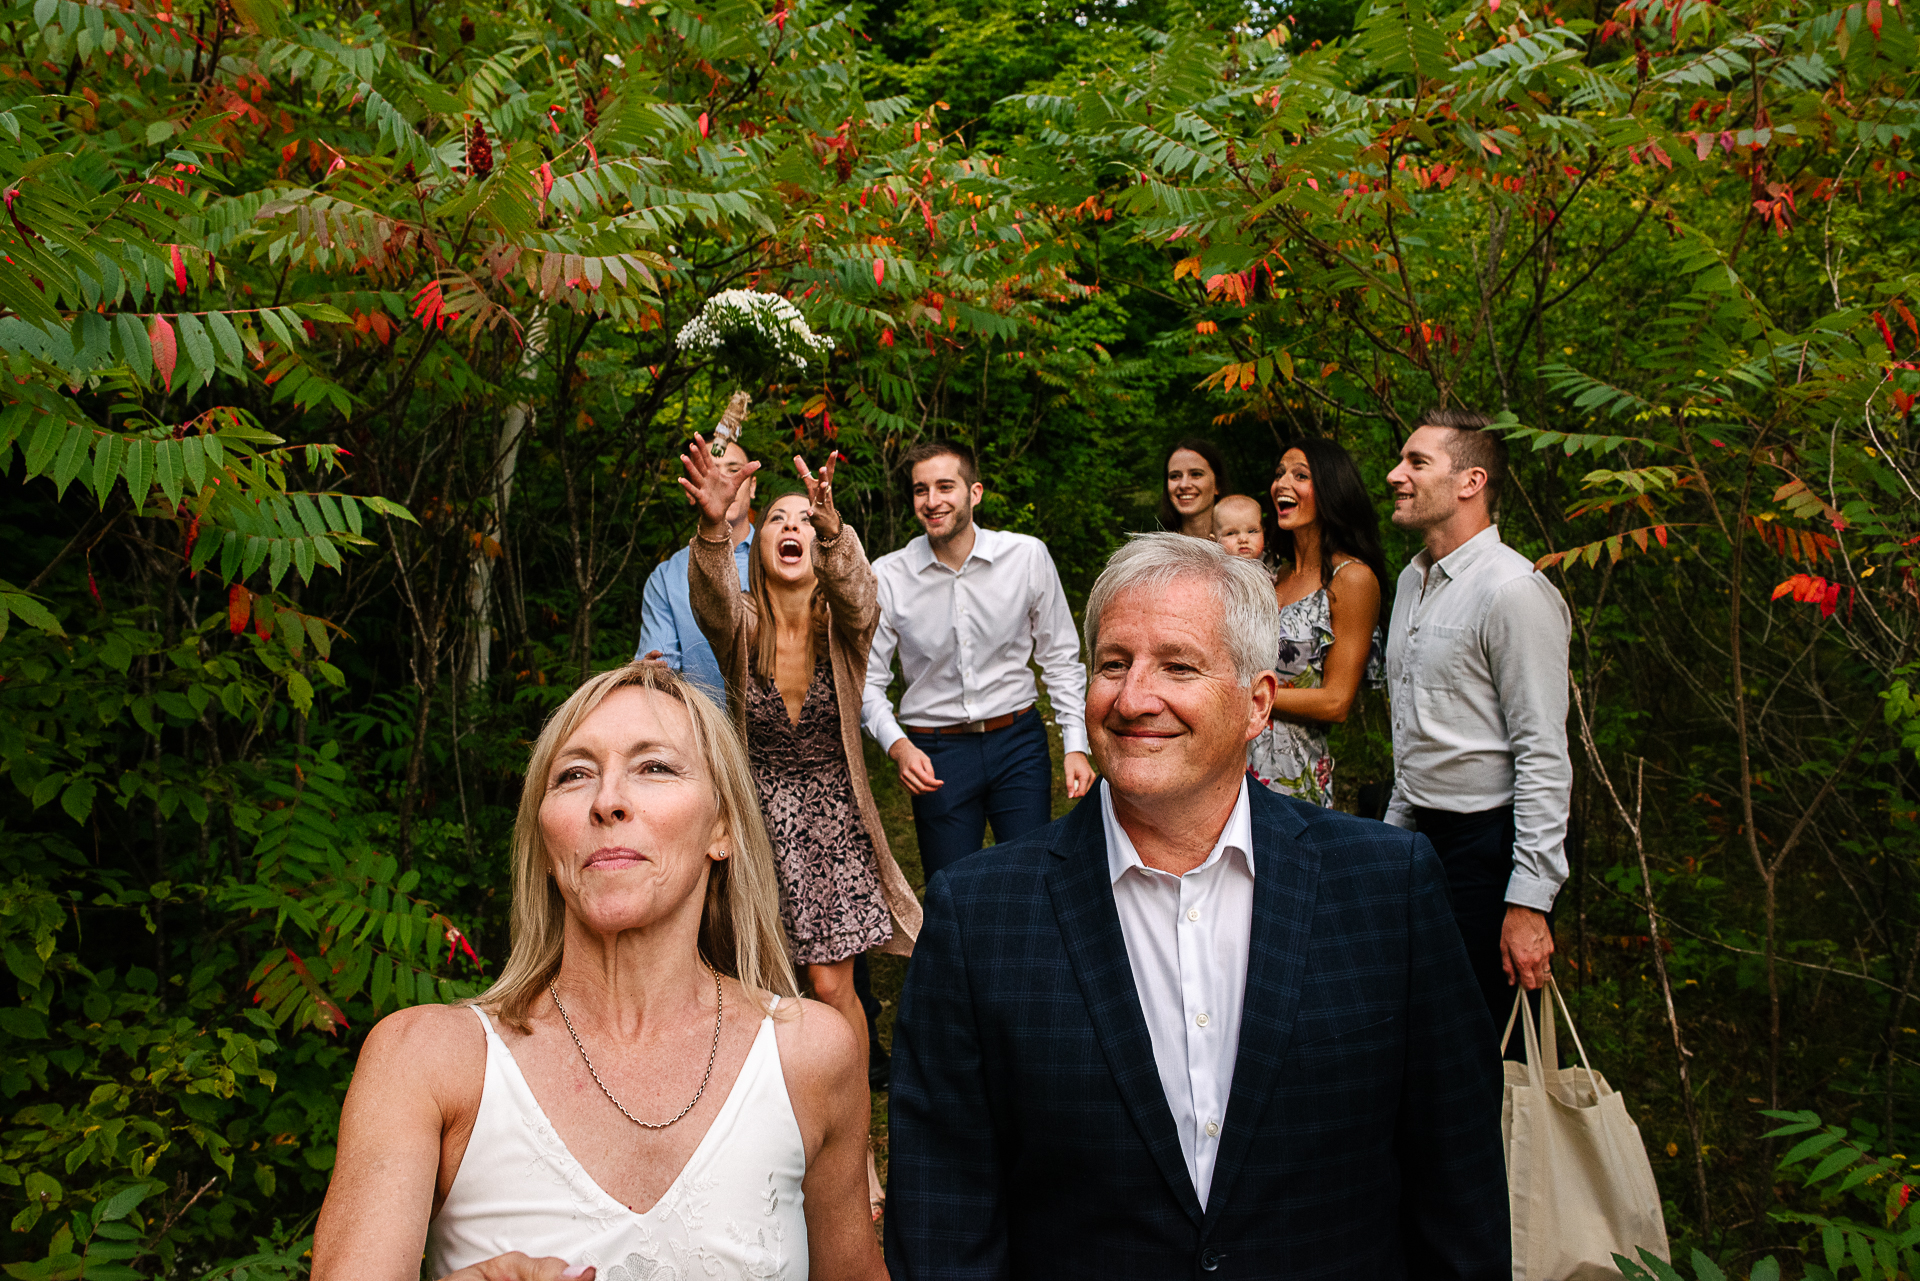 Ontario Backyard Elopement Reception Flower Toss | The bride tosses her bridal bouquet behind her, and her daughter catches